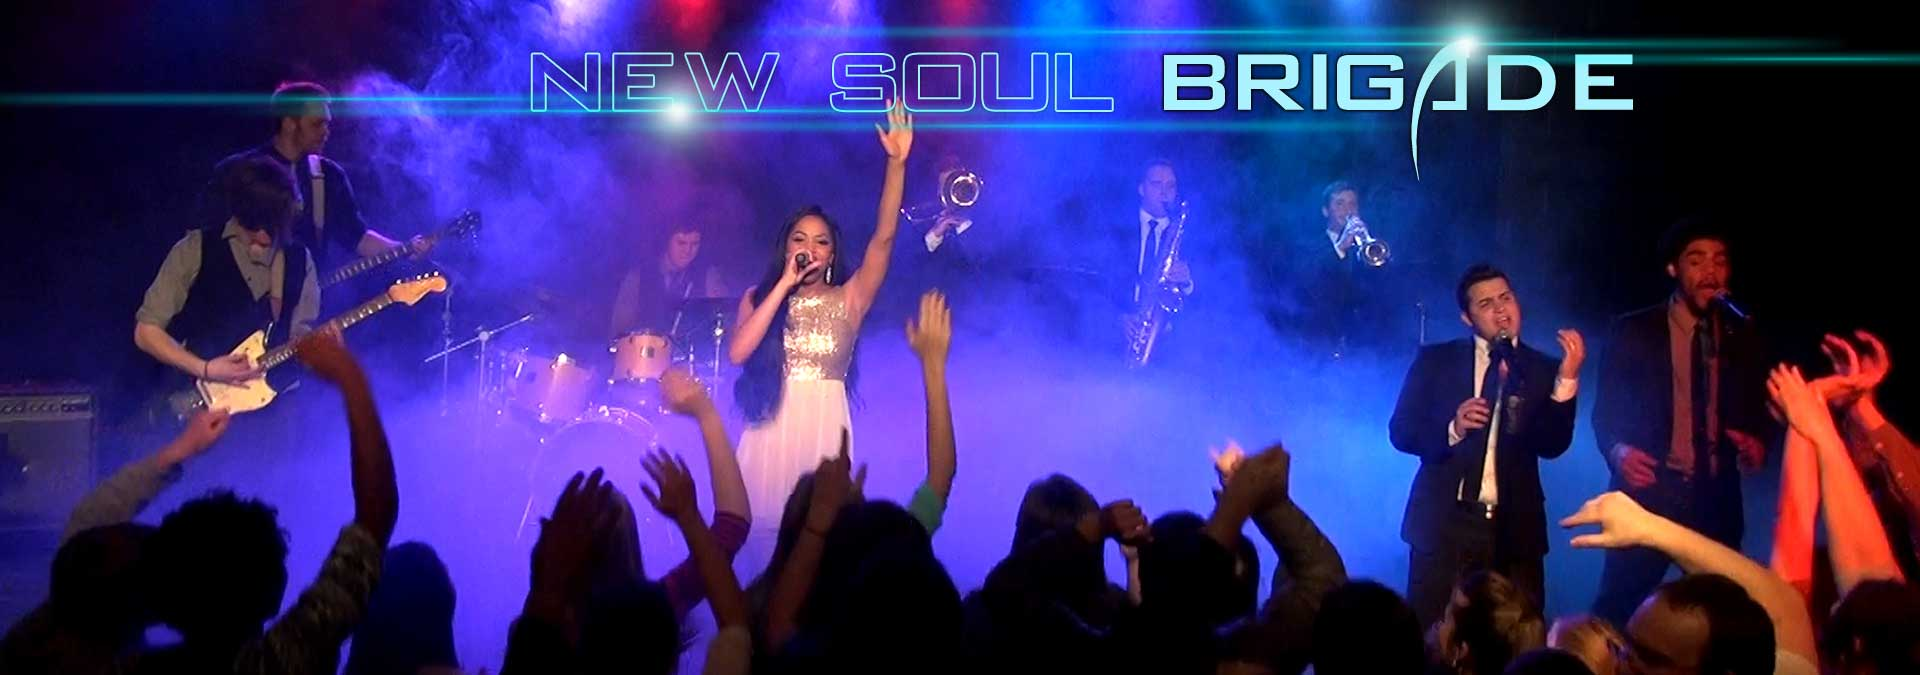 New Soul Brigade Band Home Slider Image